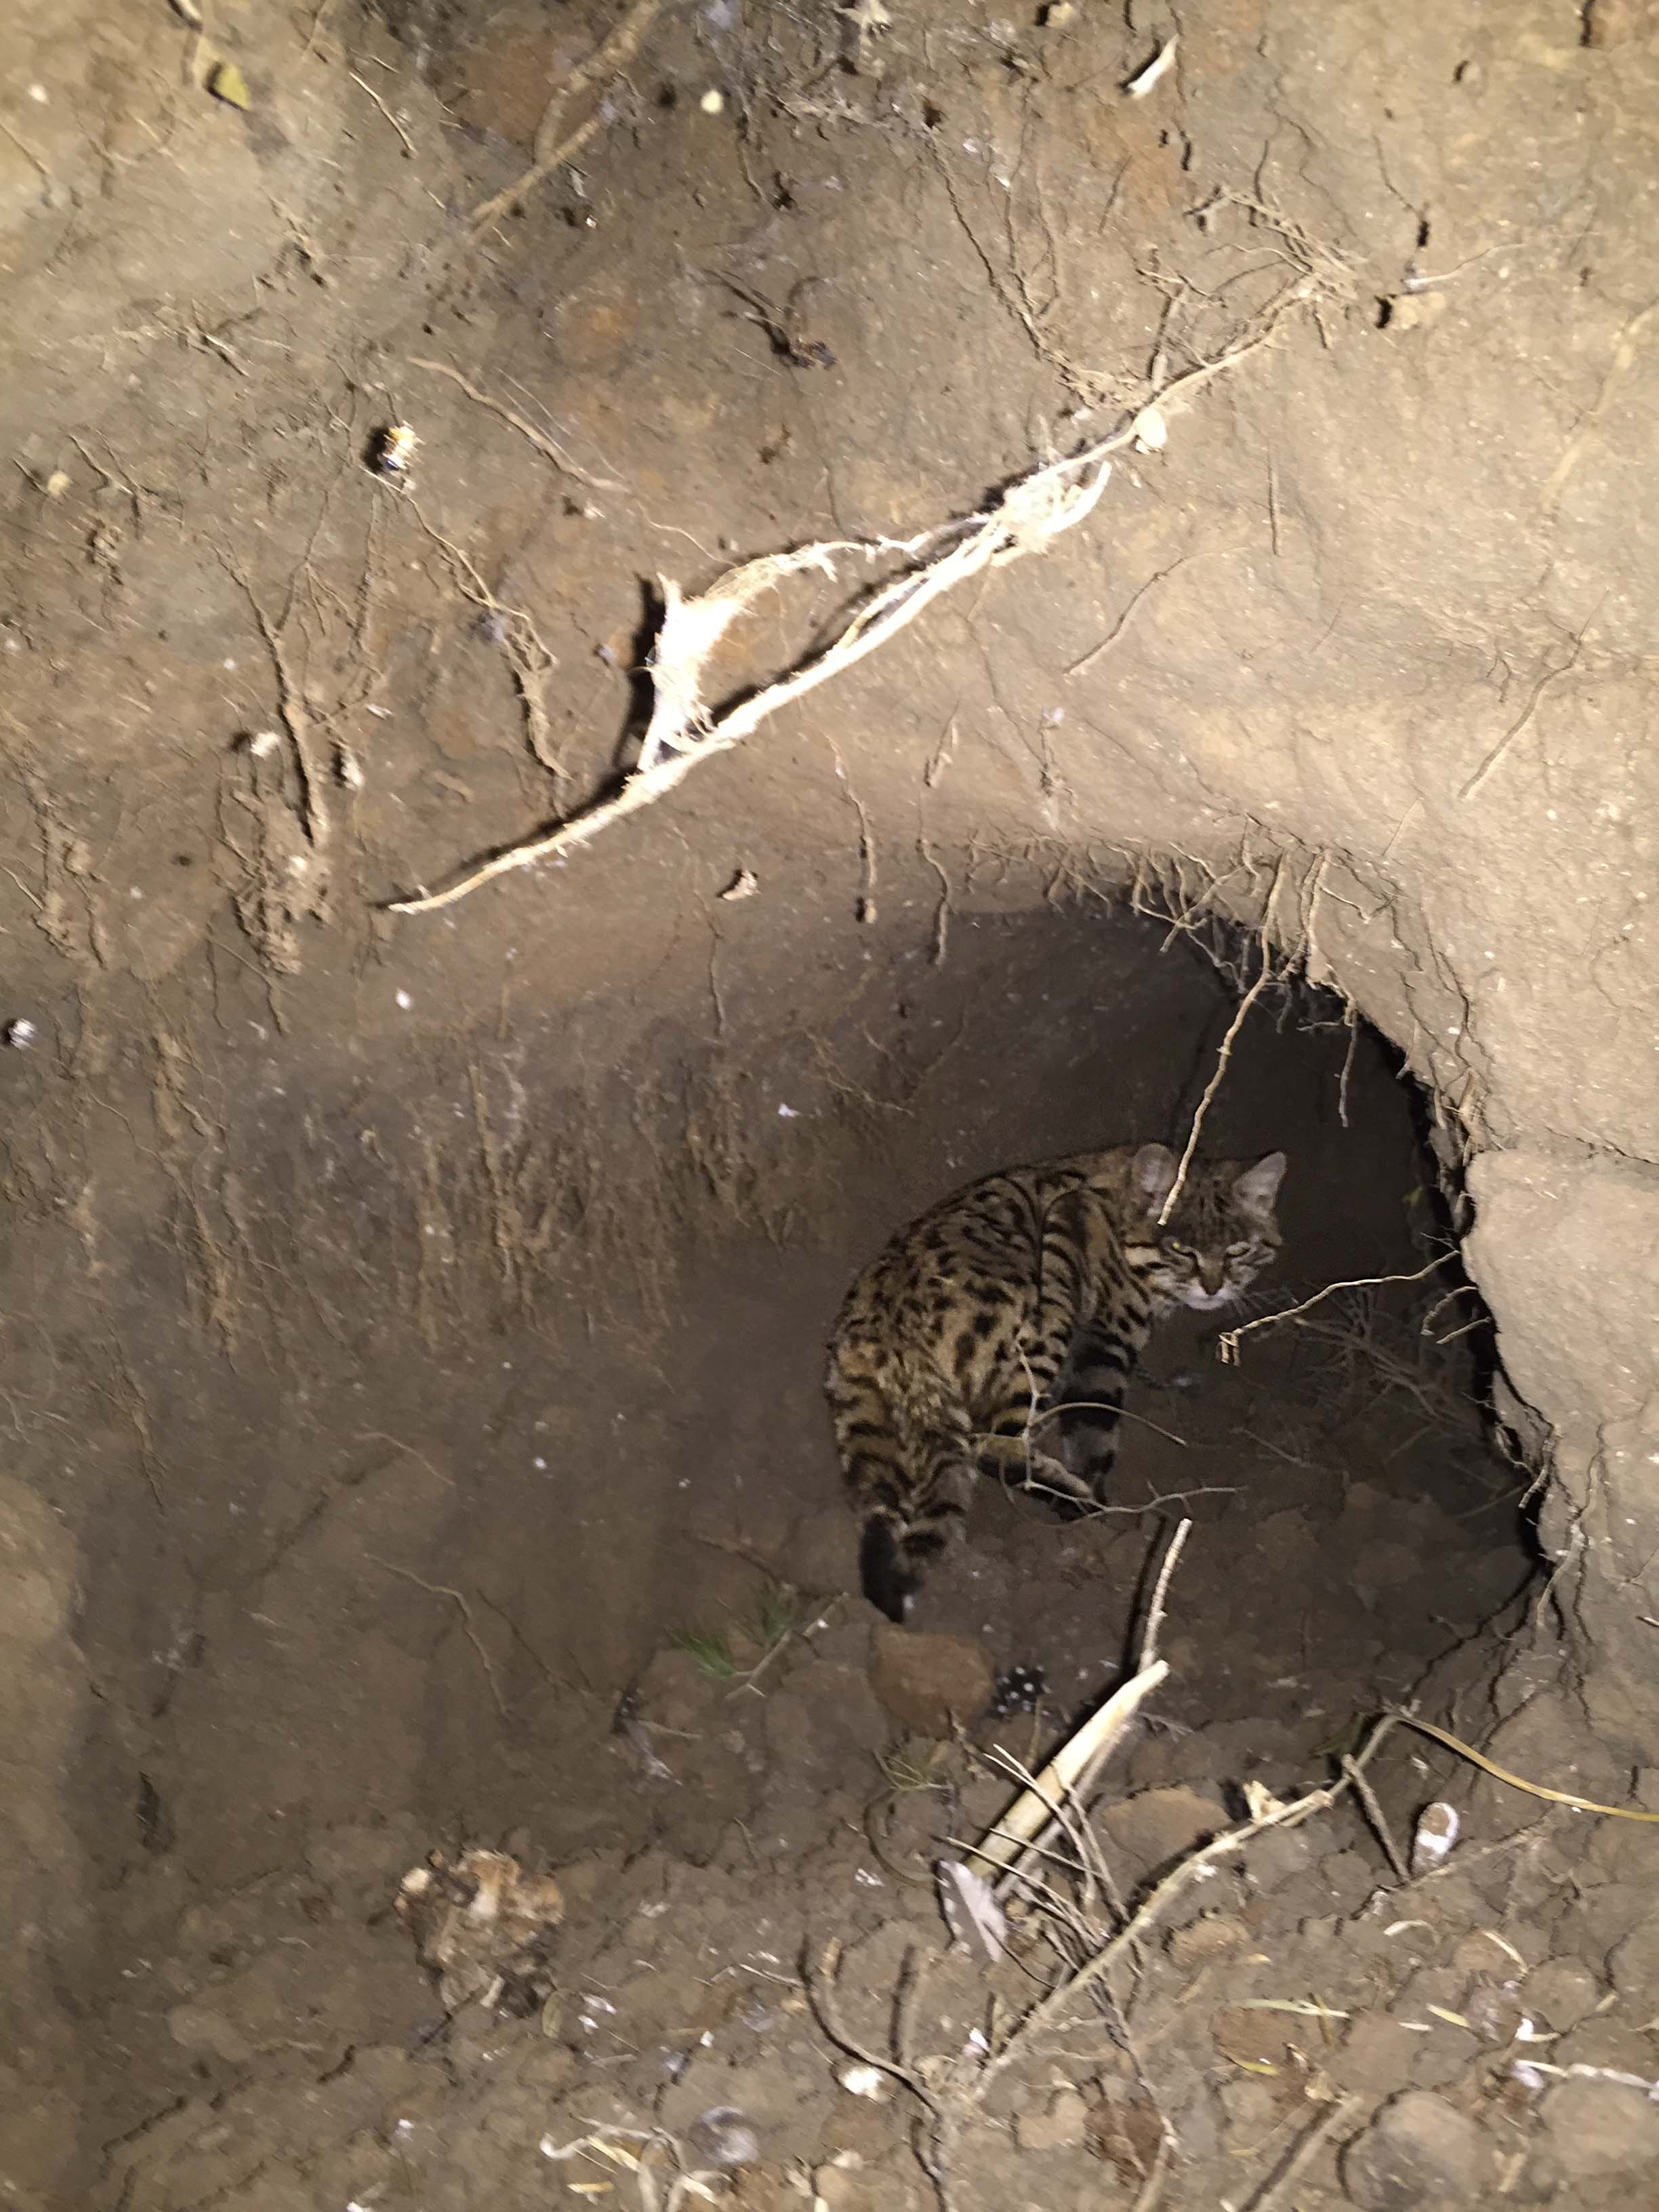 Black-footed cat staying cool below ground on a hot summer day. Photo by Beryl Wilson.